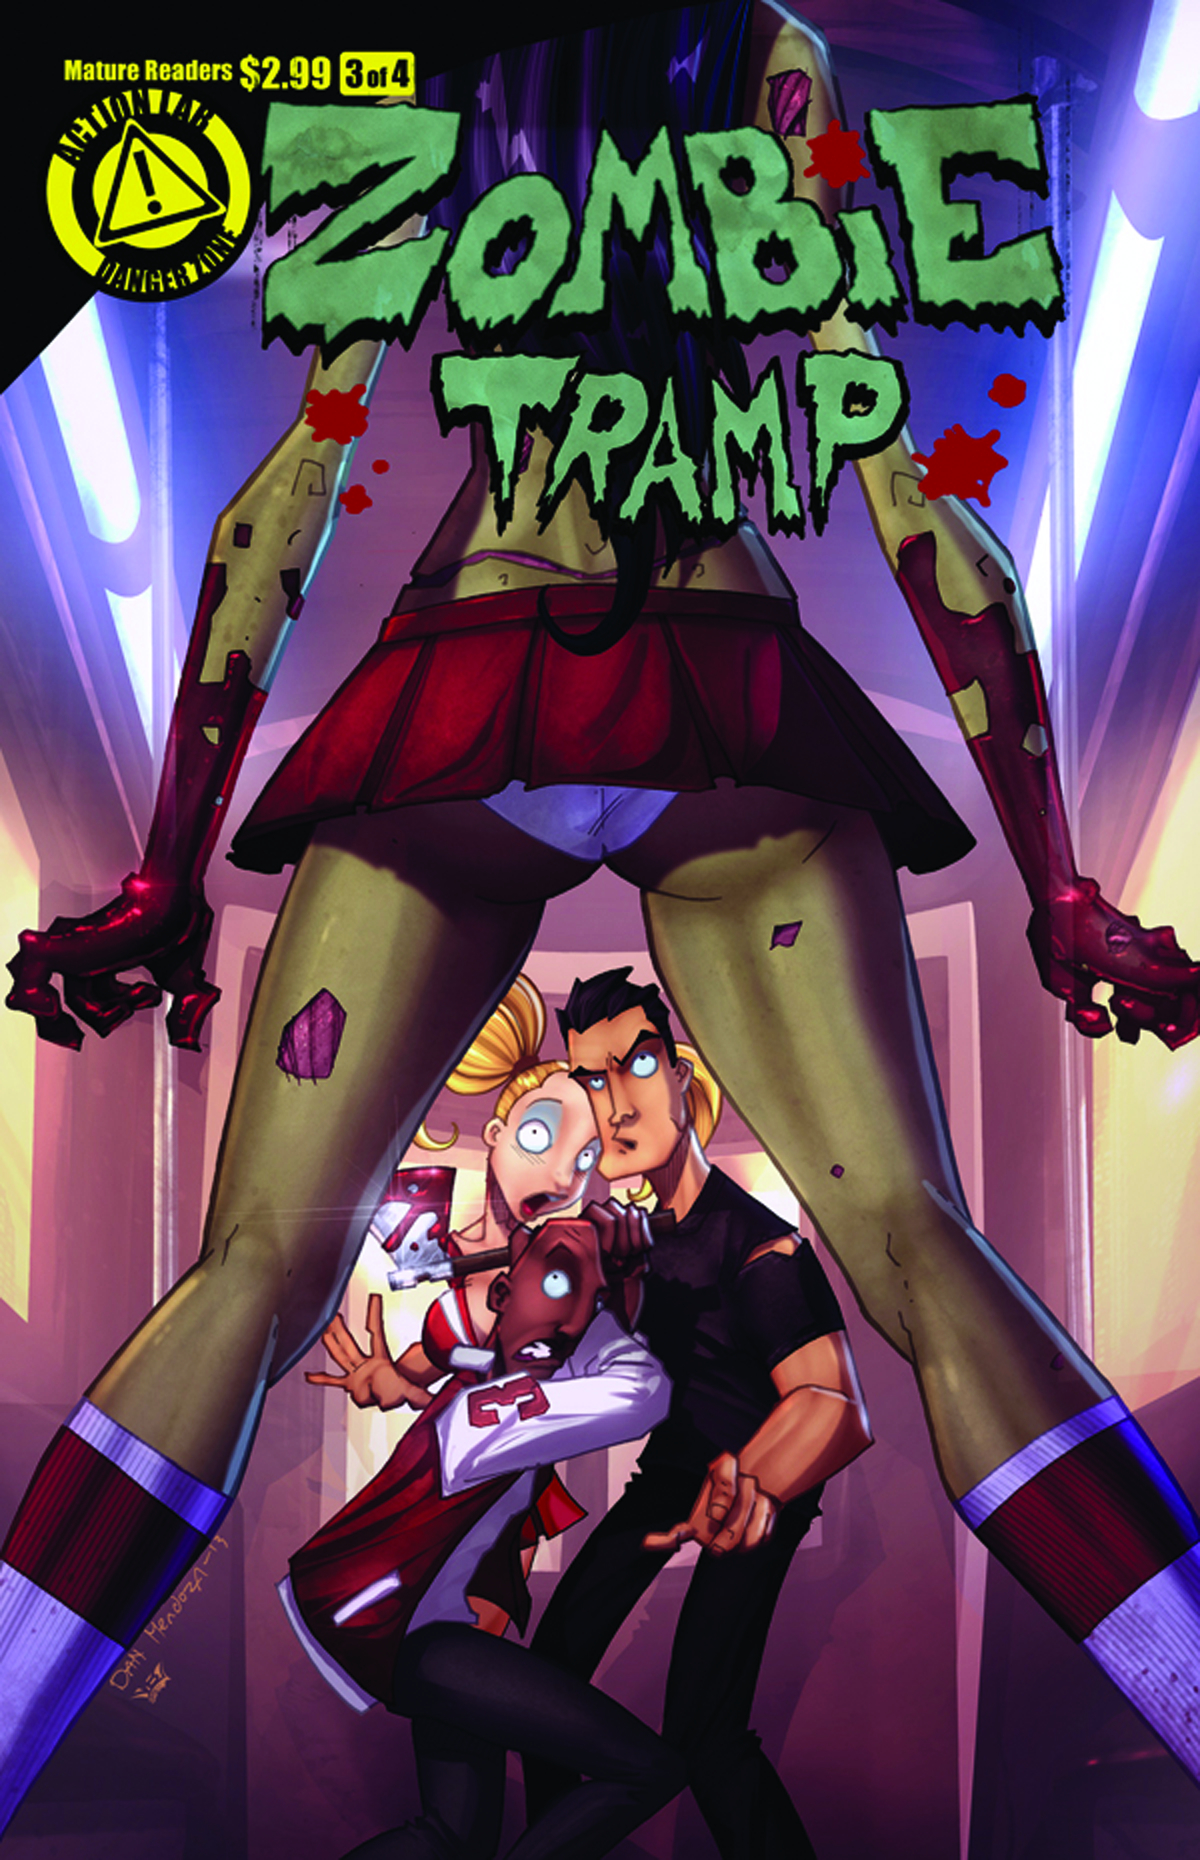 ZOMBIE TRAMP VOL 2 #3 (OF 4) MAIN COVERS